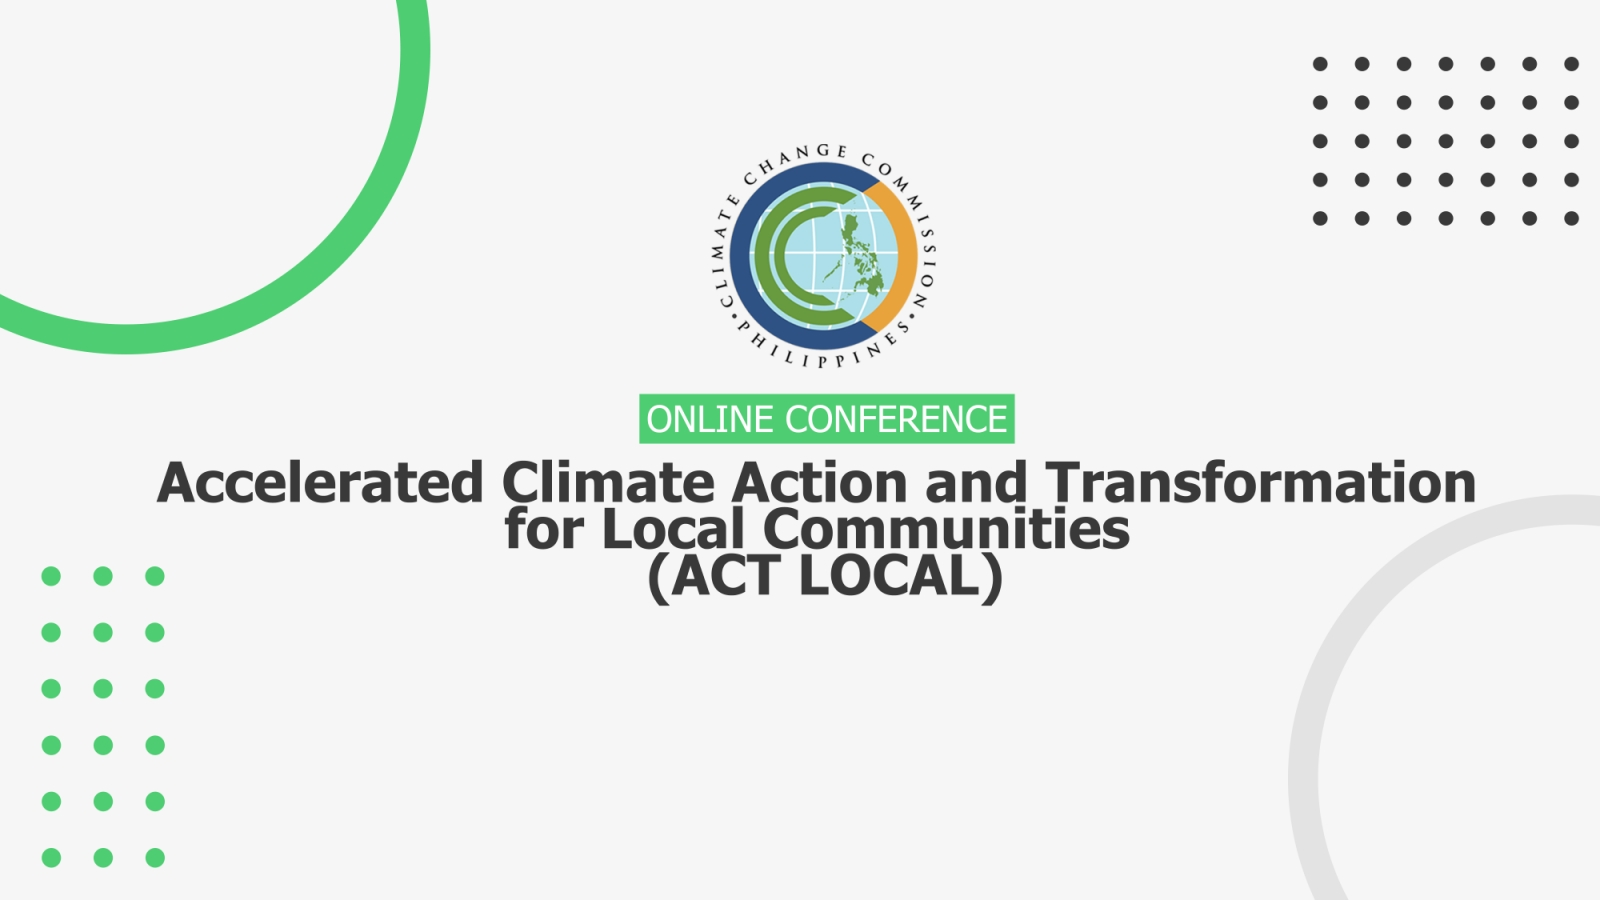 Week 4 ACT LOCAL - Accelerated Climate Action and Transformation for Local Communities